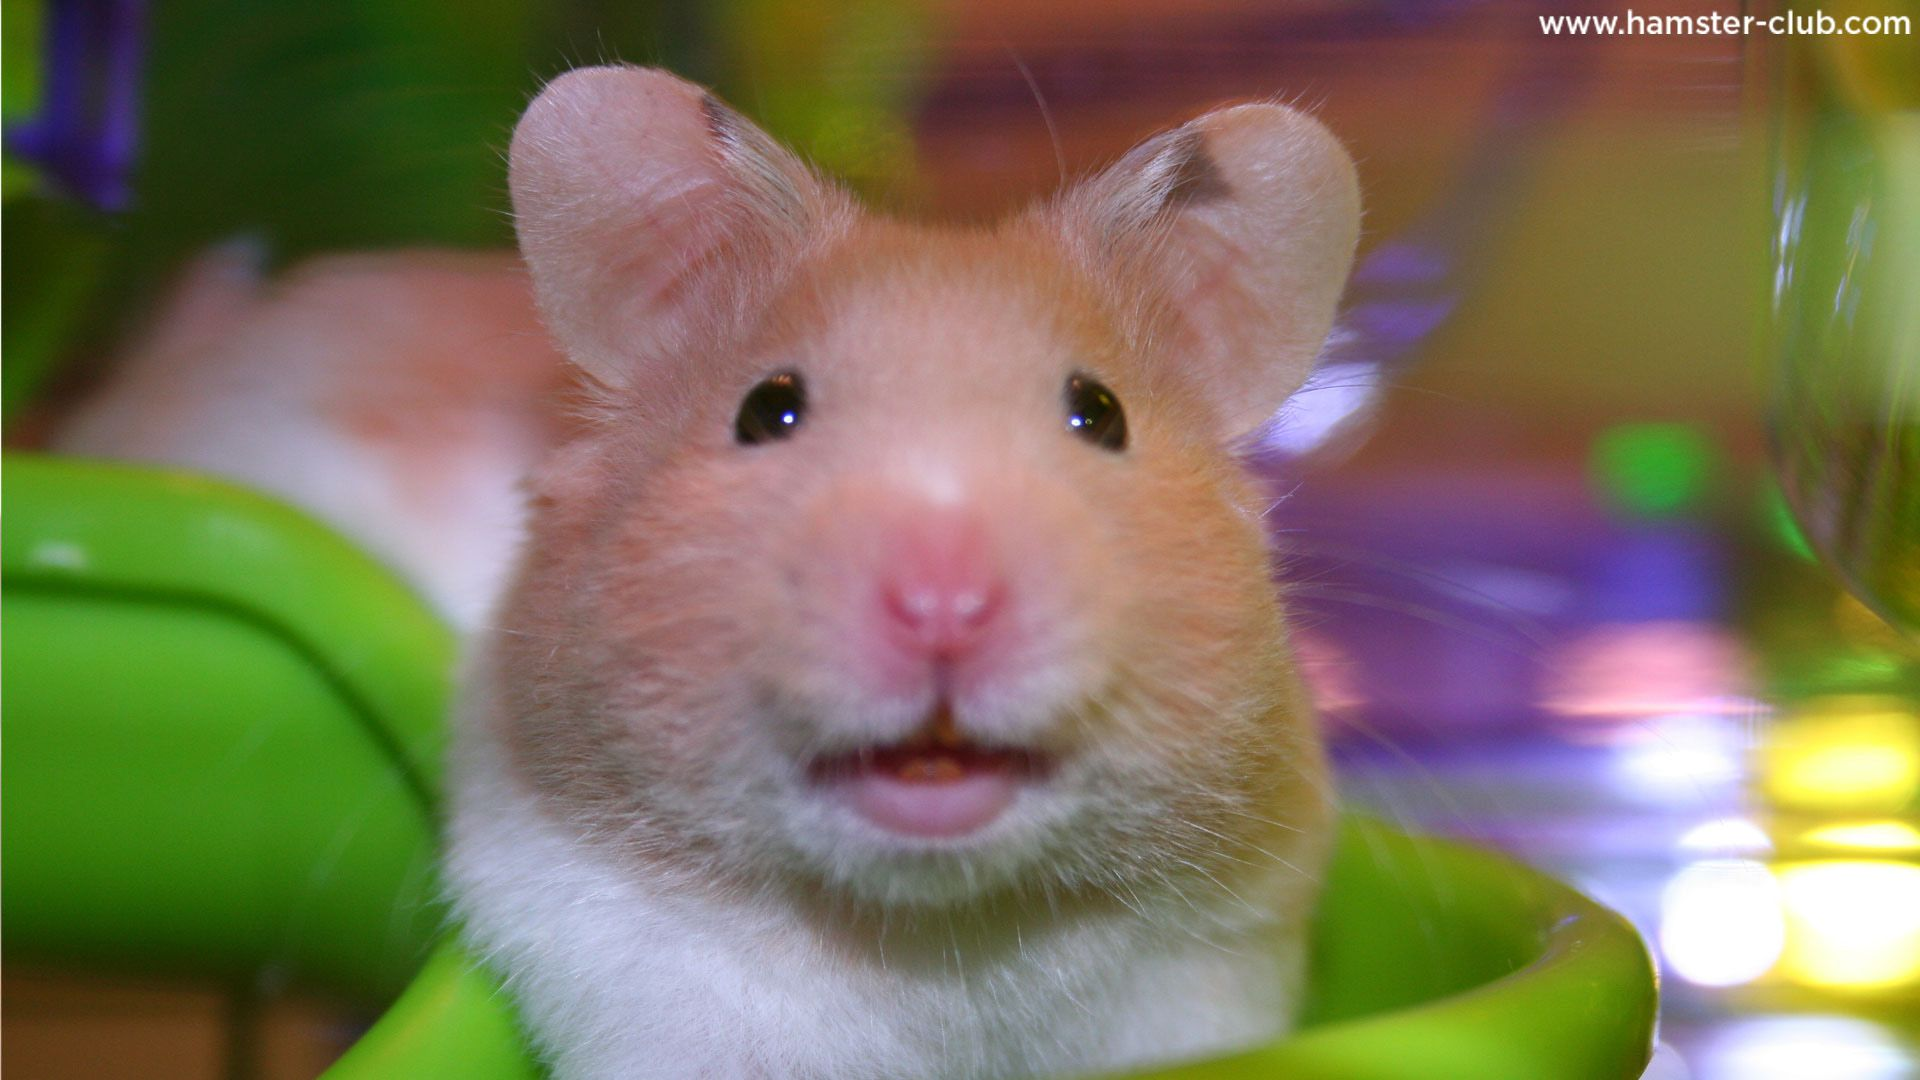 Smiling Hamster Best small pets, Cute hamsters, Baby hamster